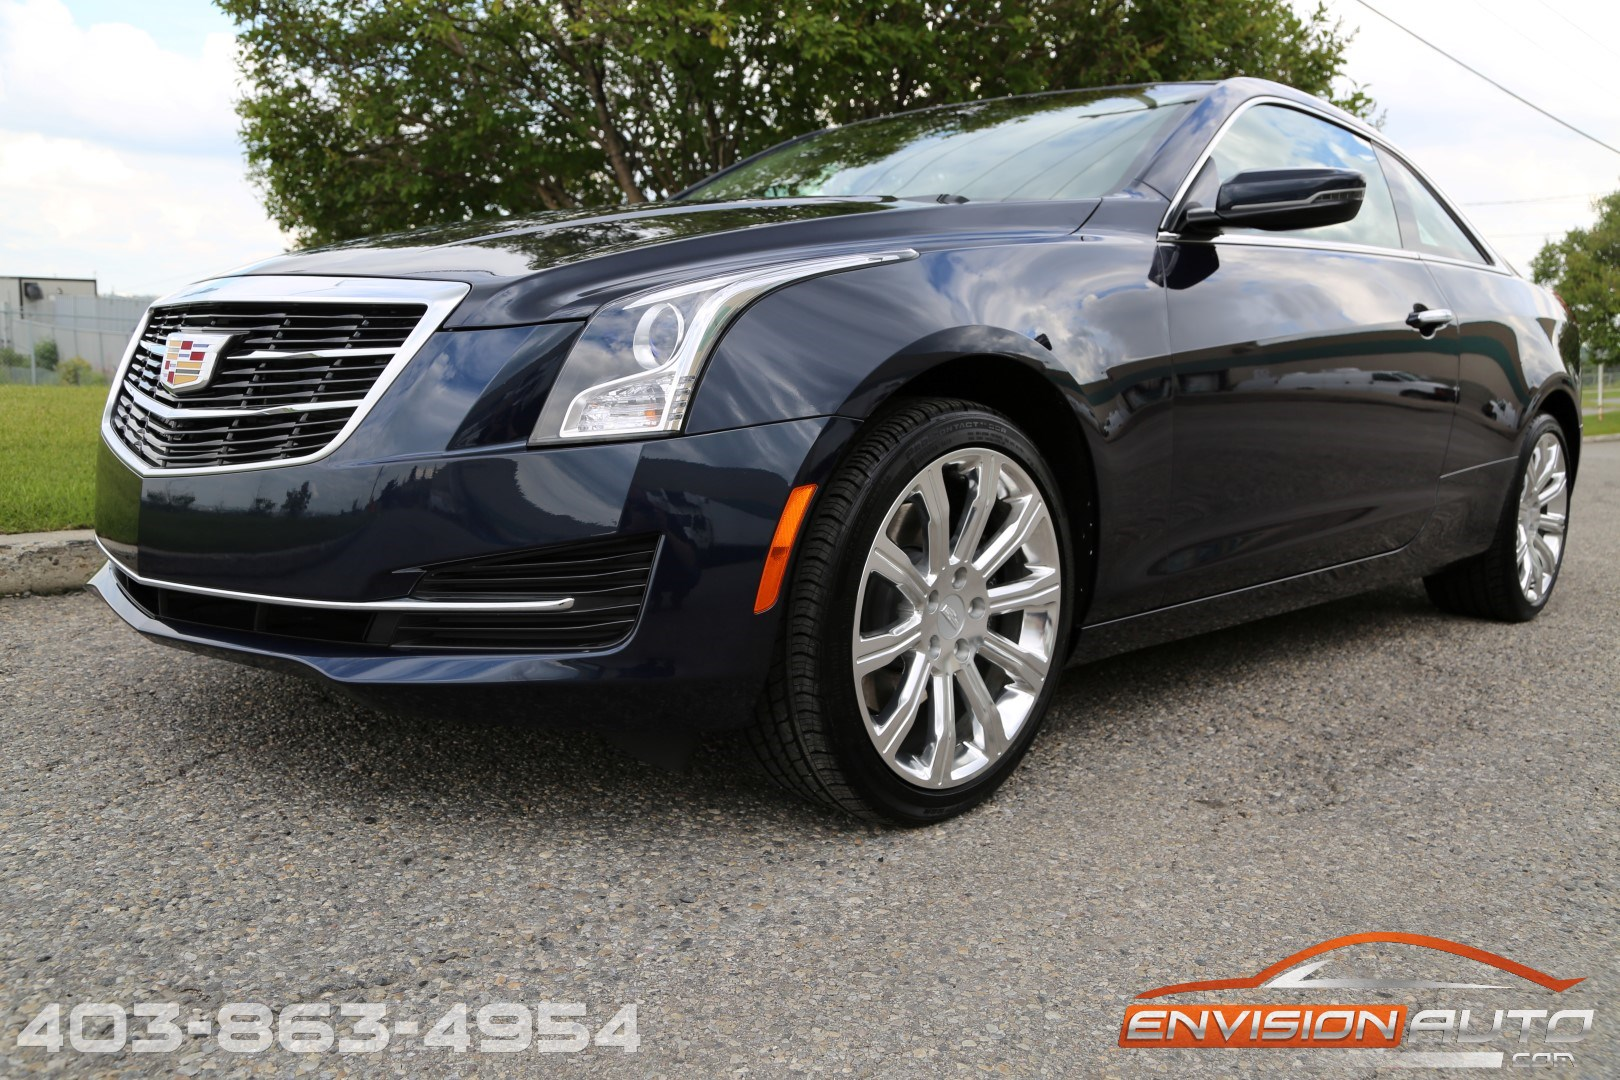 2015 Cadillac ATS4 Coupe – UNDER 5,000KMS – 1 OWNER! - Envision Auto